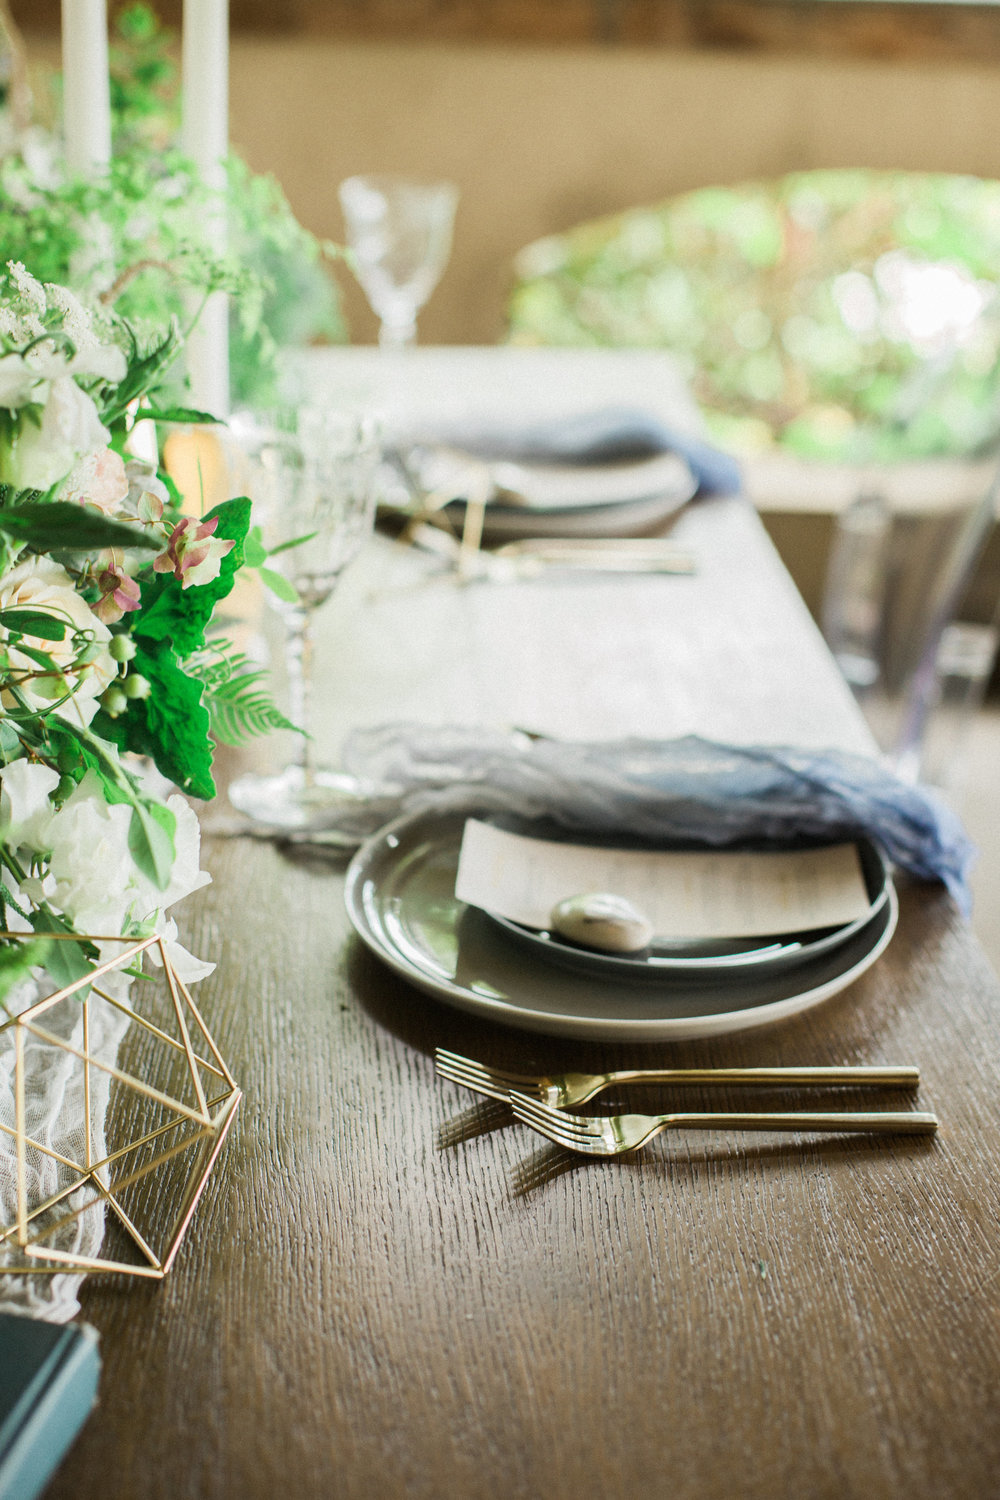 Seattle Wedding Planning | Wedding Wise Design | Alicia Lynne Photography | 2017 Pantone Color of the Year Greenery